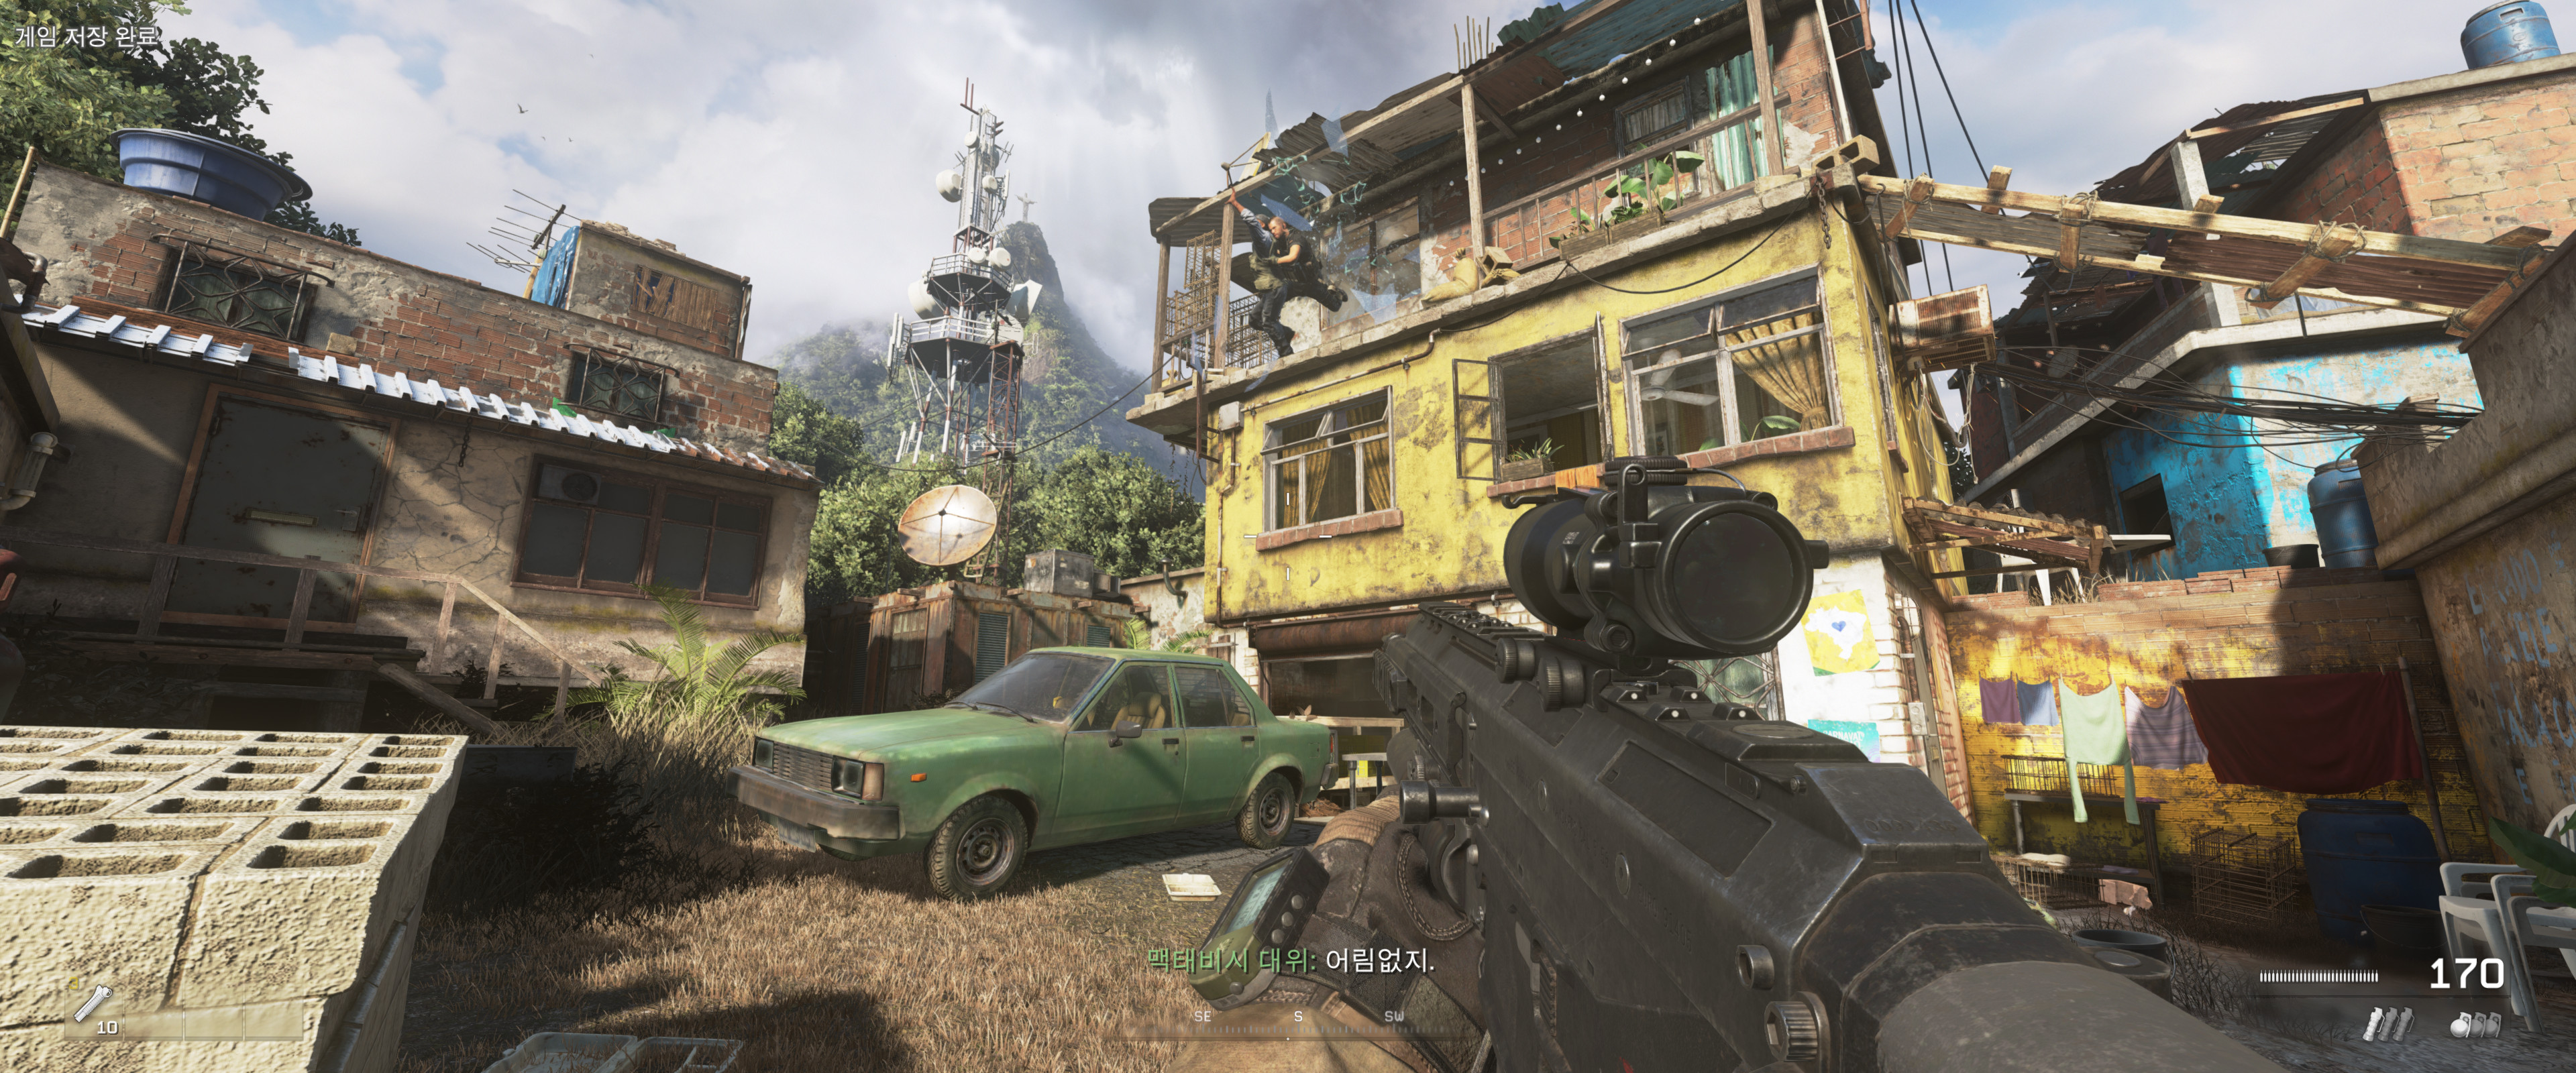 jpg_Call of Duty  Modern Warfare 2 Remastered Screenshot 2020.05.01 - 11.11.11.50.jpg